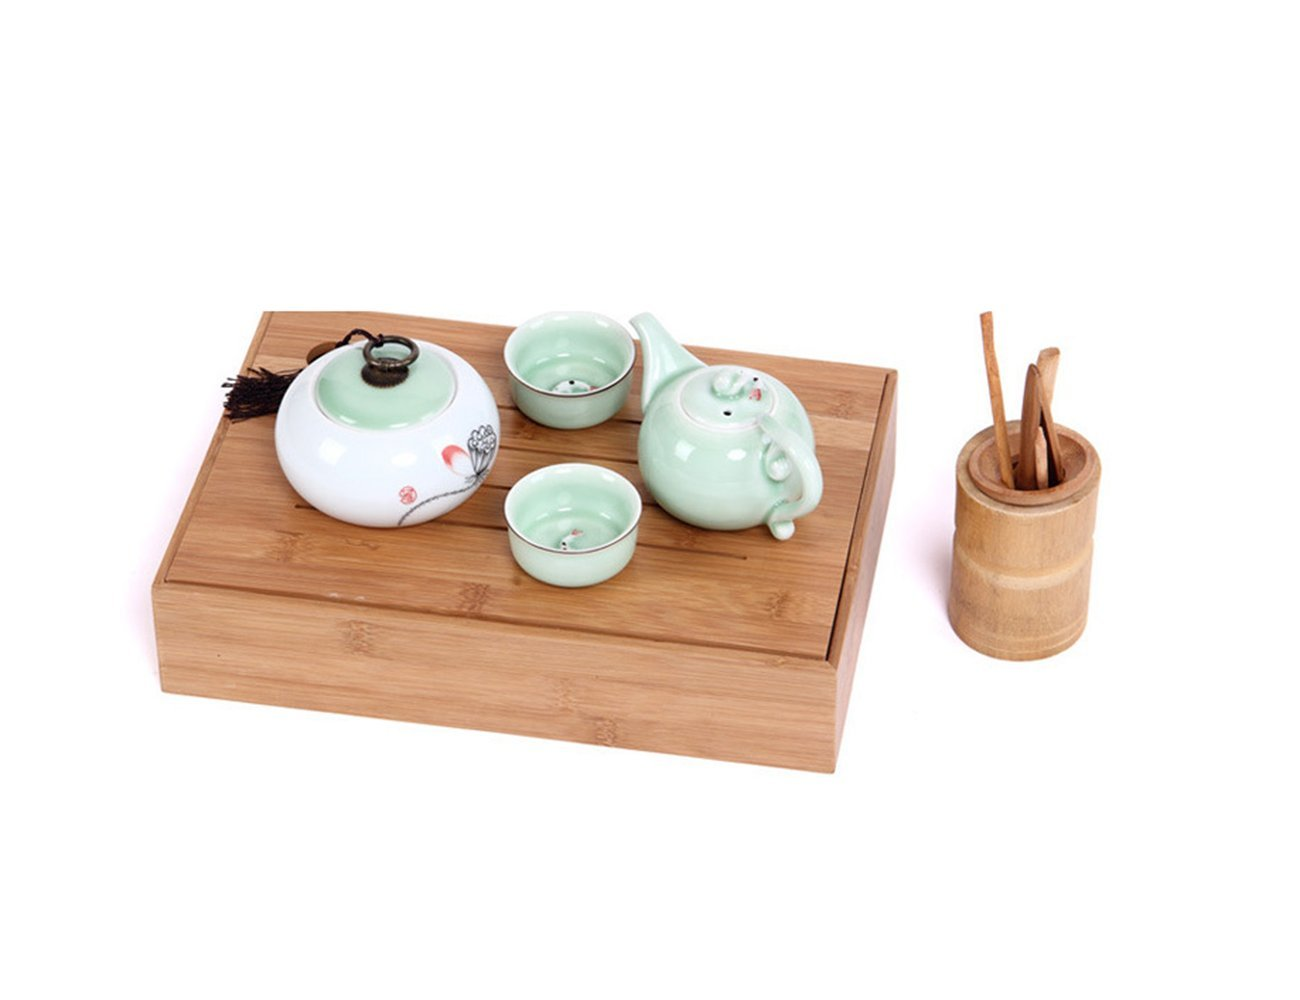 Wood Box,AOLOX Creative Bamboo Tea Bag Storage Box Multi Sectional Snack Serving Tray Set with Lid,Suitable for Tea Bag ,Dried Fruits, Nuts, Candies Holder and sock,Underwear-6 Compartments by AOLOX (Image #4)